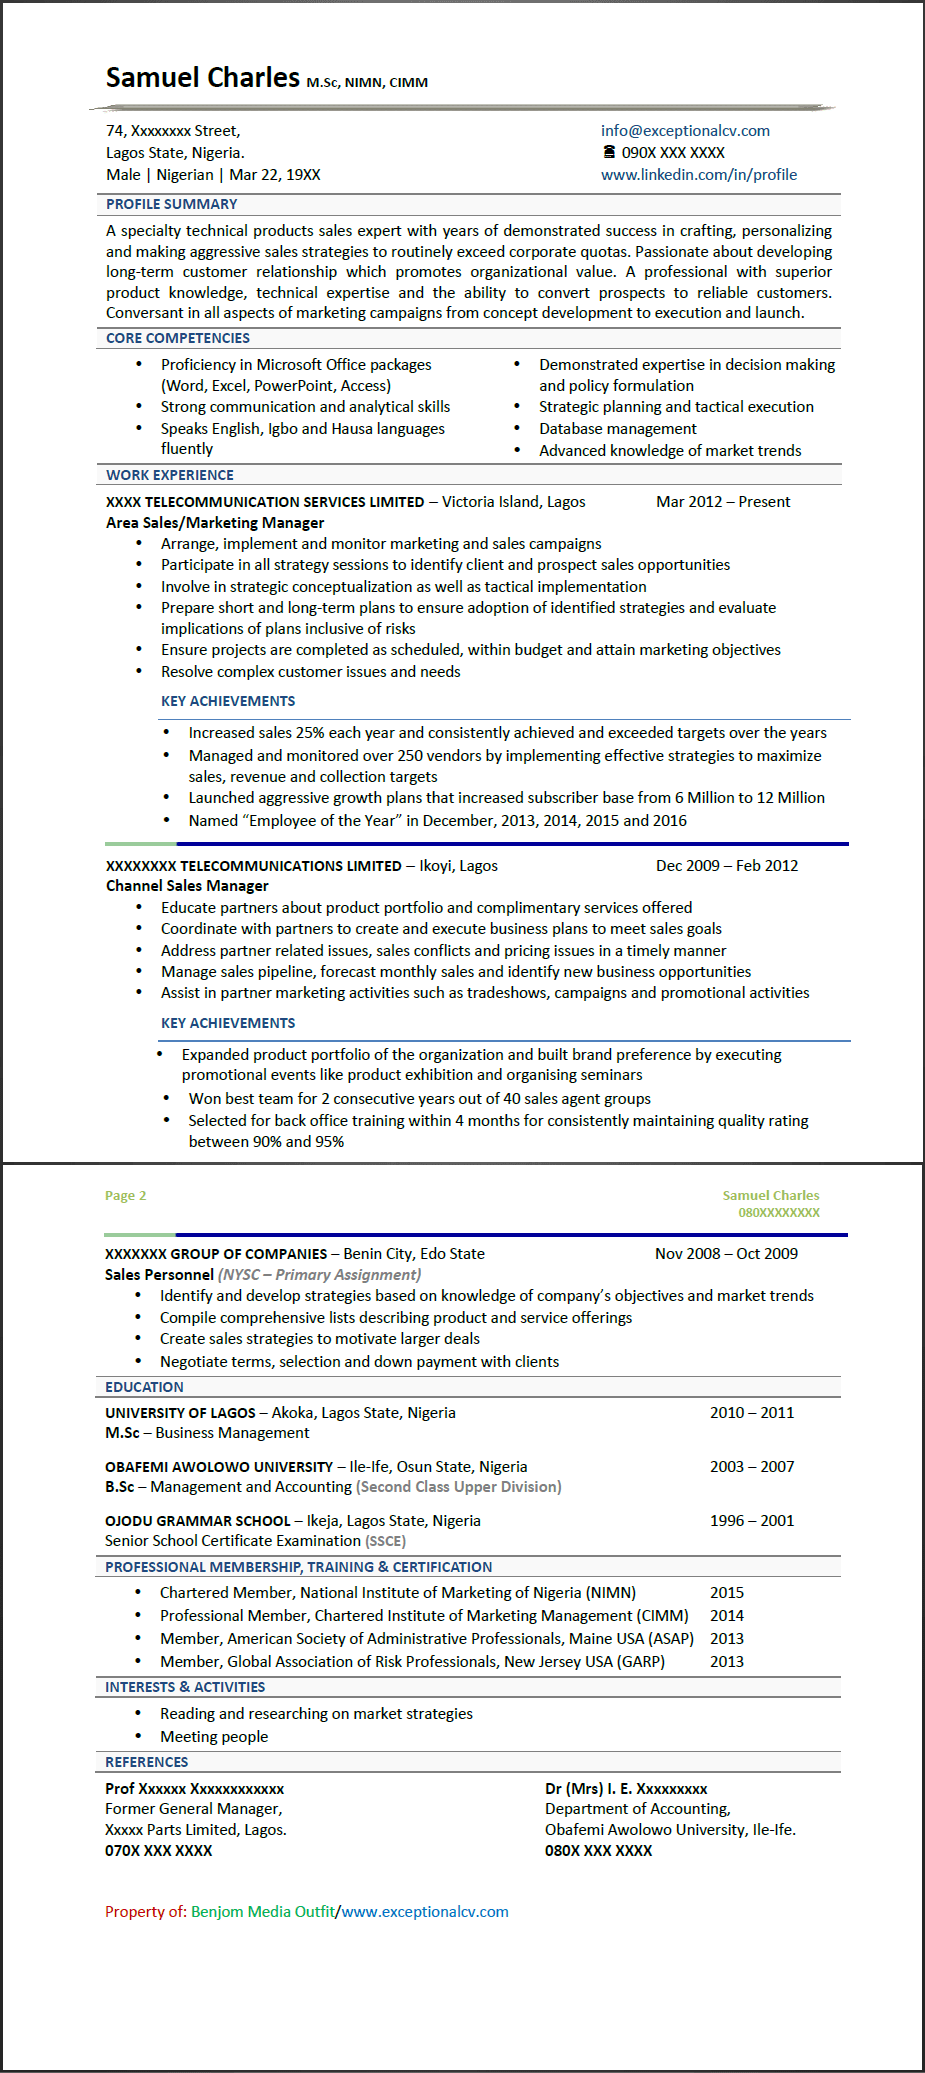 Exceptional CV Samples